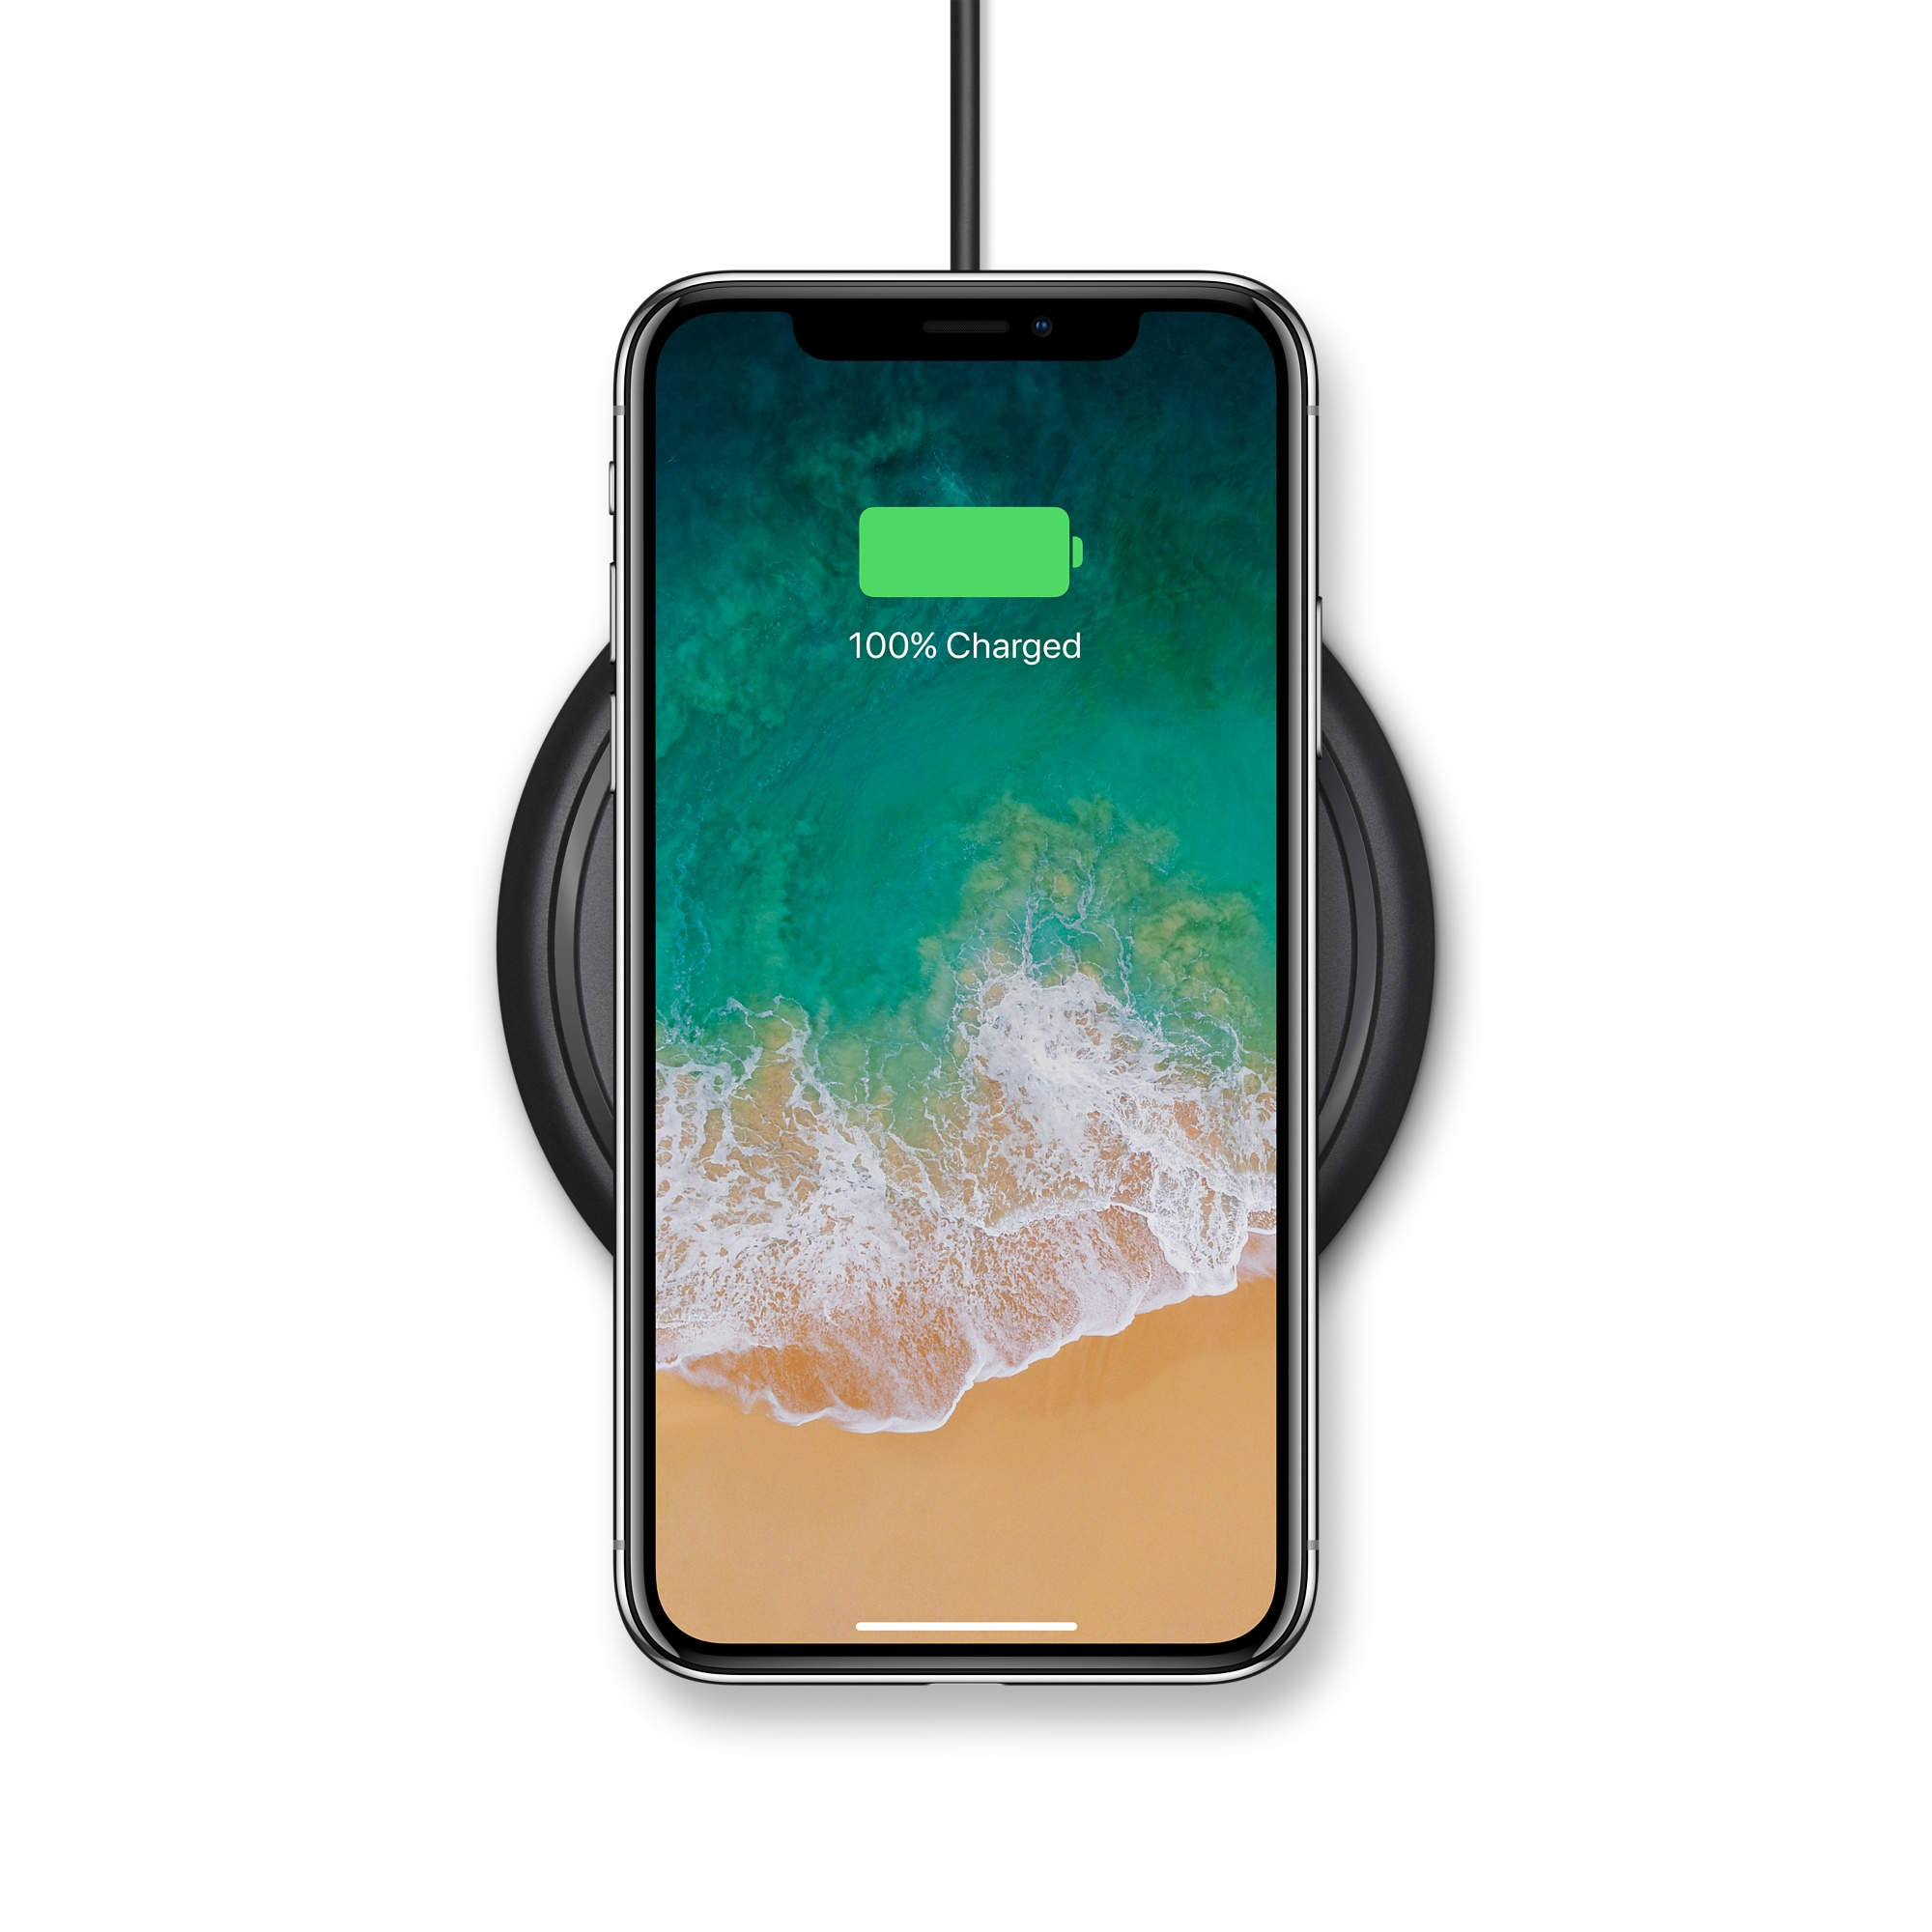 521574e0b24 mophie Wireless iPhone Charger – Learn and Buy - Mac Prices Australia